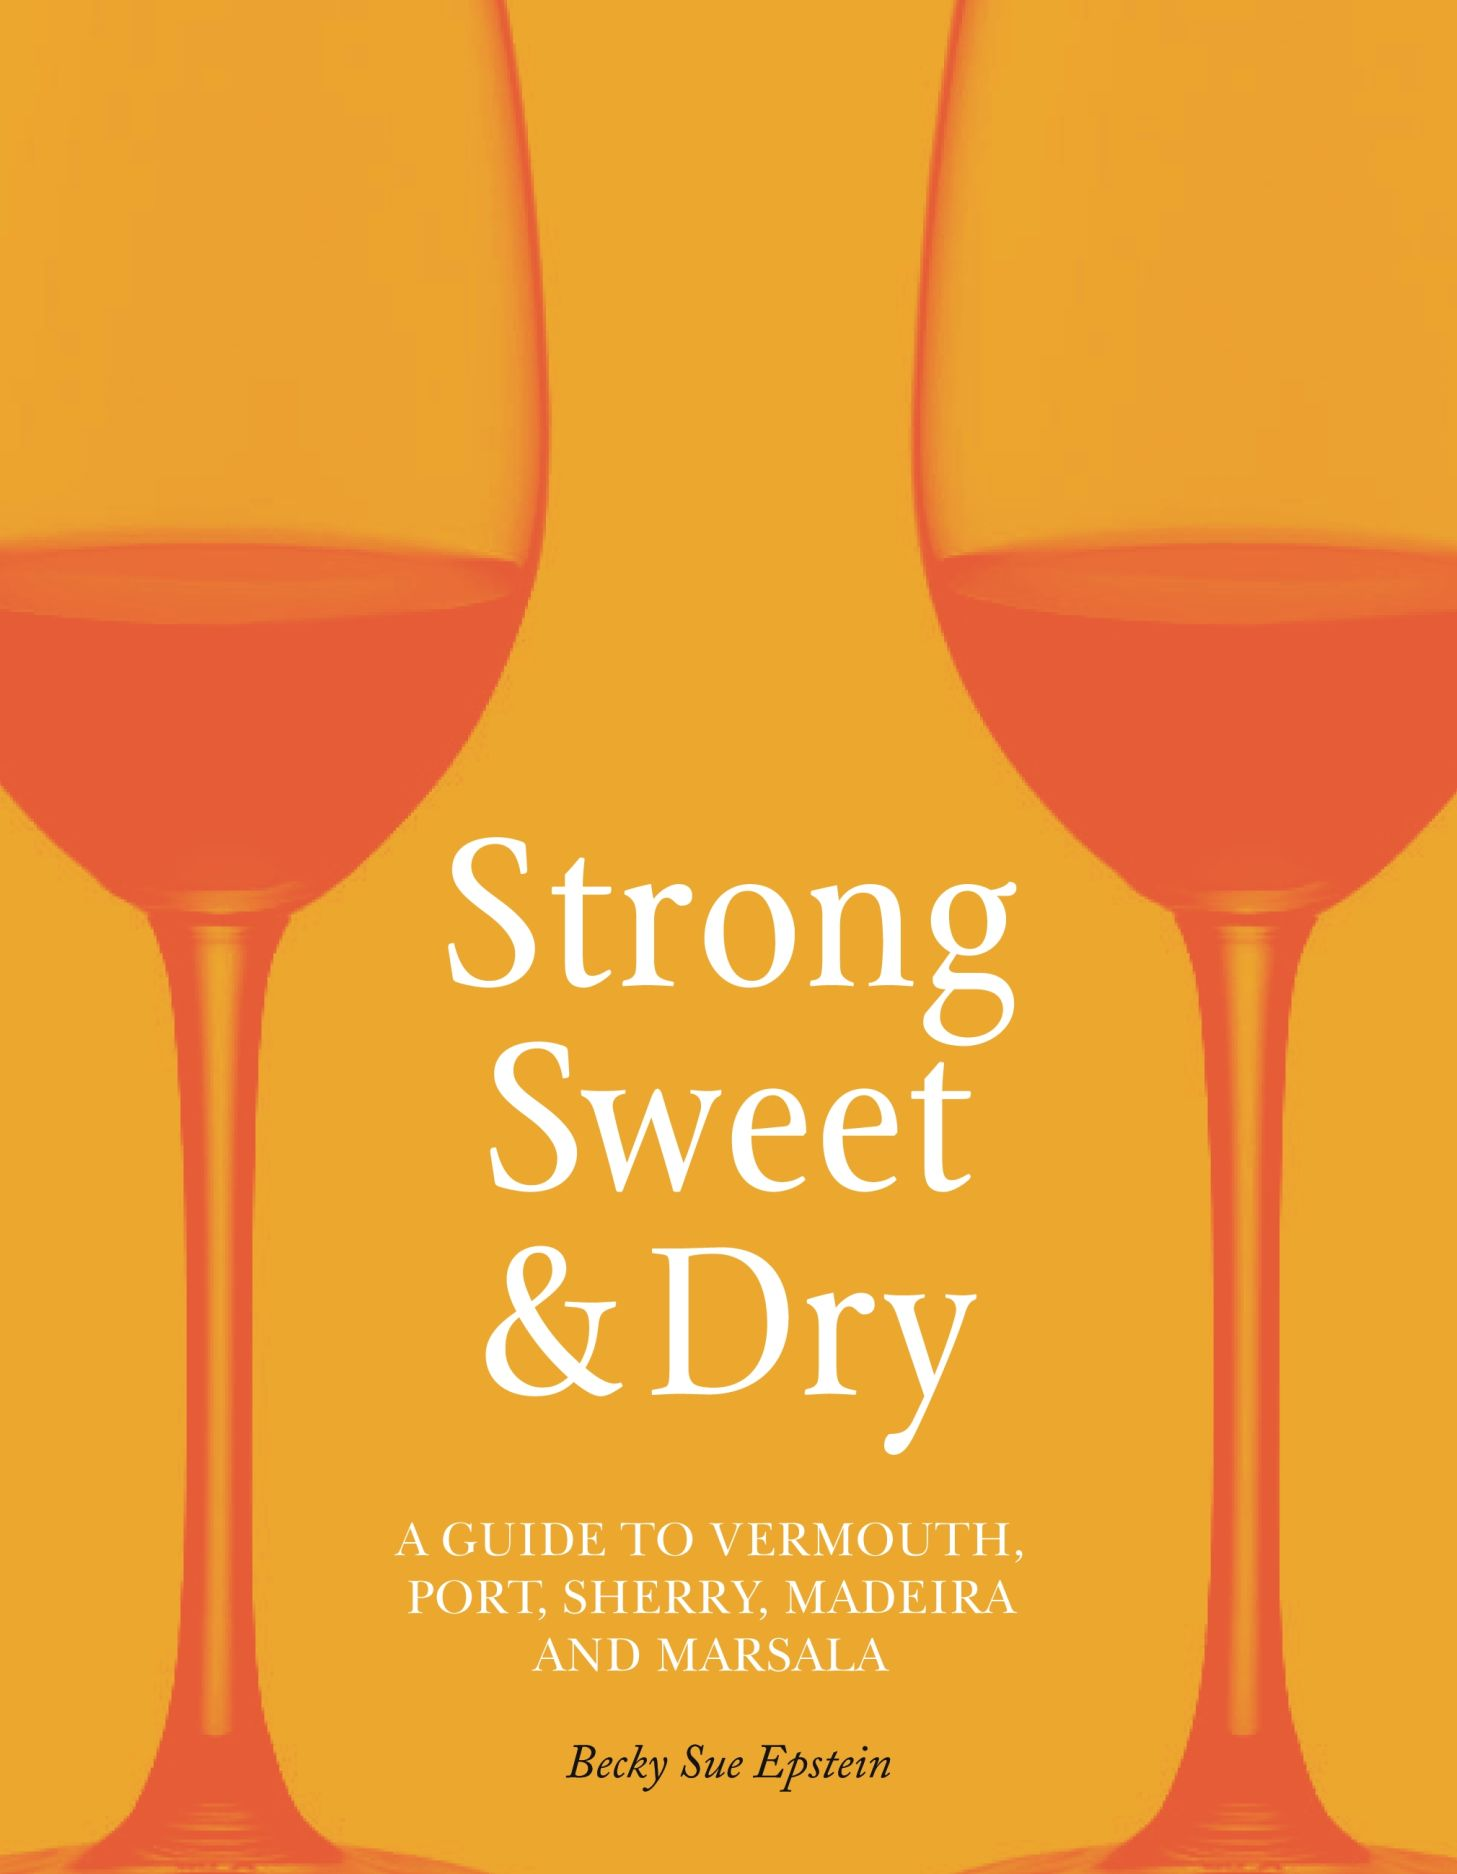 Strong, Sweet and Dry: A Guide to Vermouth, Port, Sherry, Madeira and Marsala